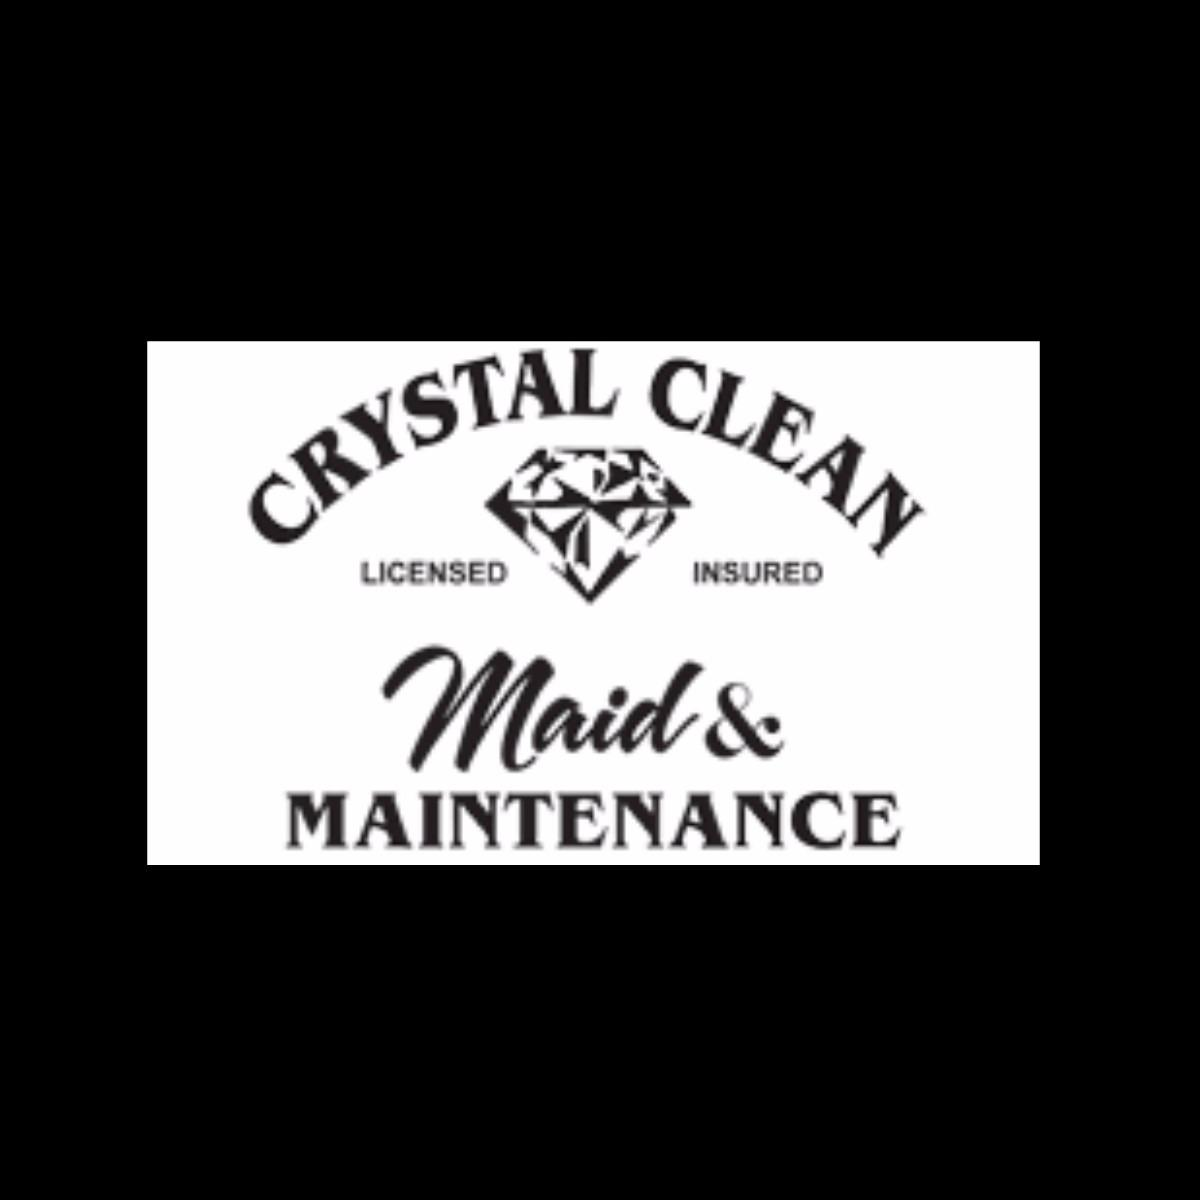 Crystal Clean MAID AND MAINTENANCE INC